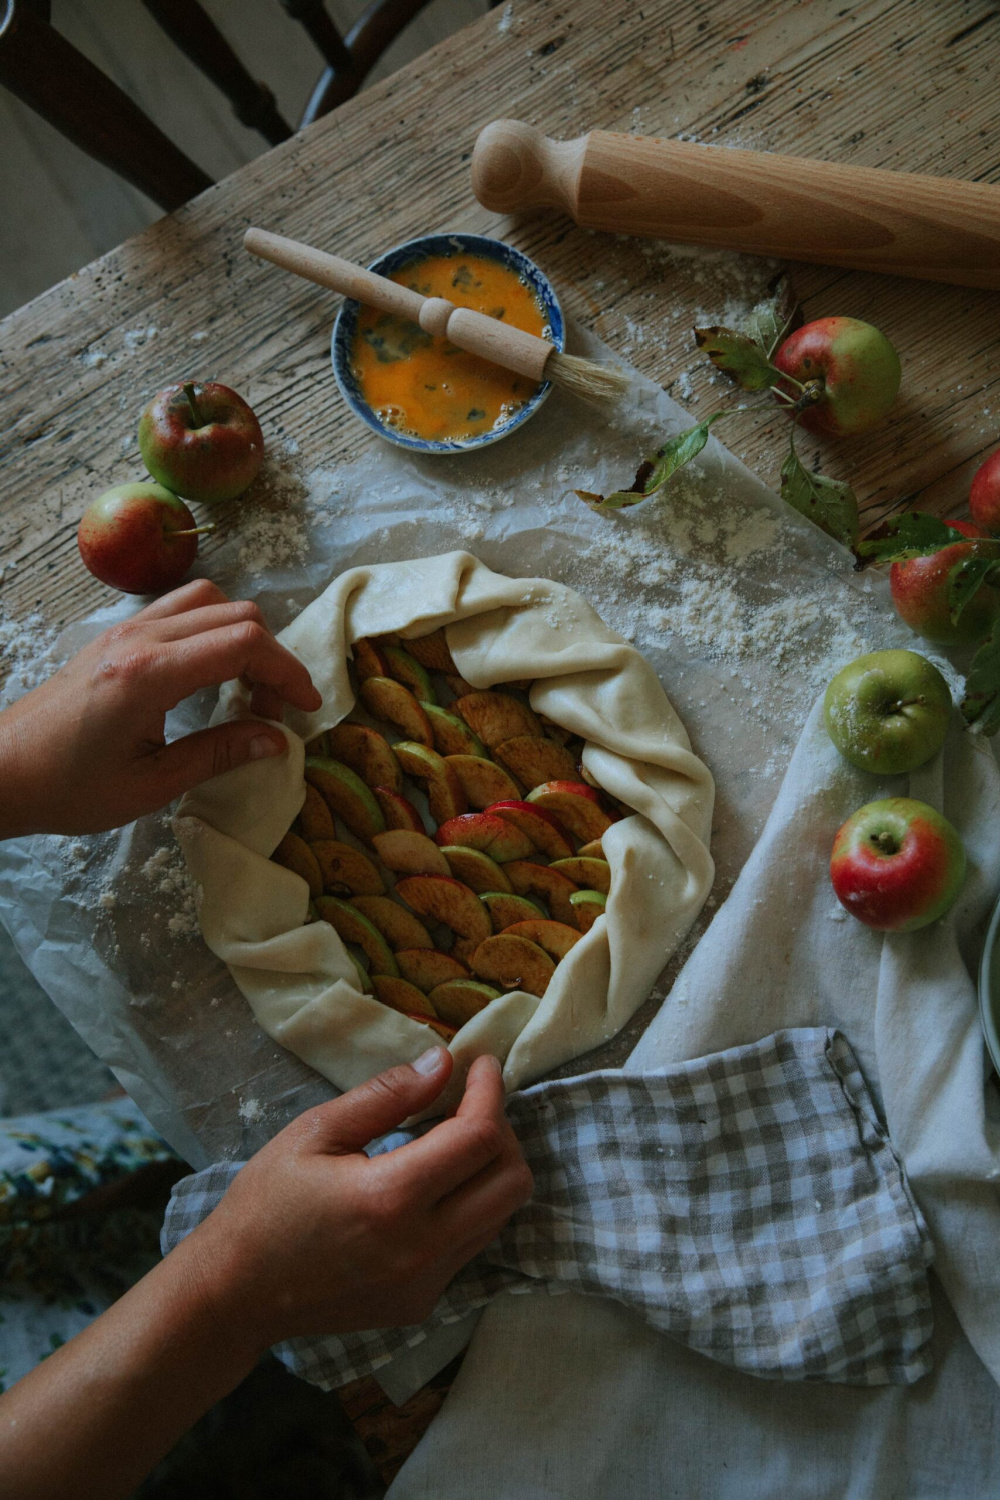 Fall vibes apple galette on a work table - @patriciarodi.